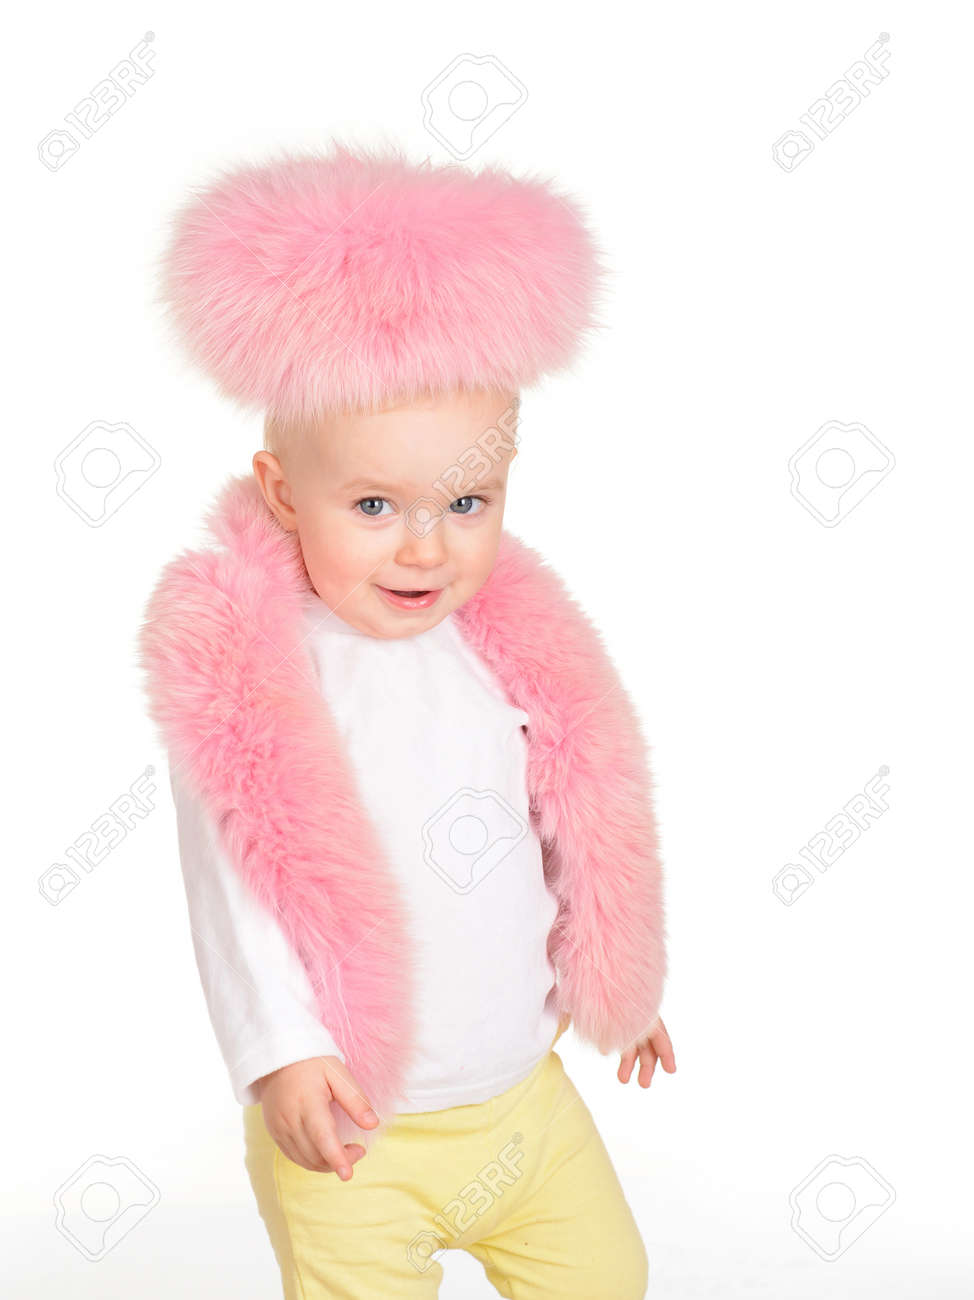 cc6a3d1e6 Cute Baby Girl Dressed In Pink Fur Play On White Background Stock ...